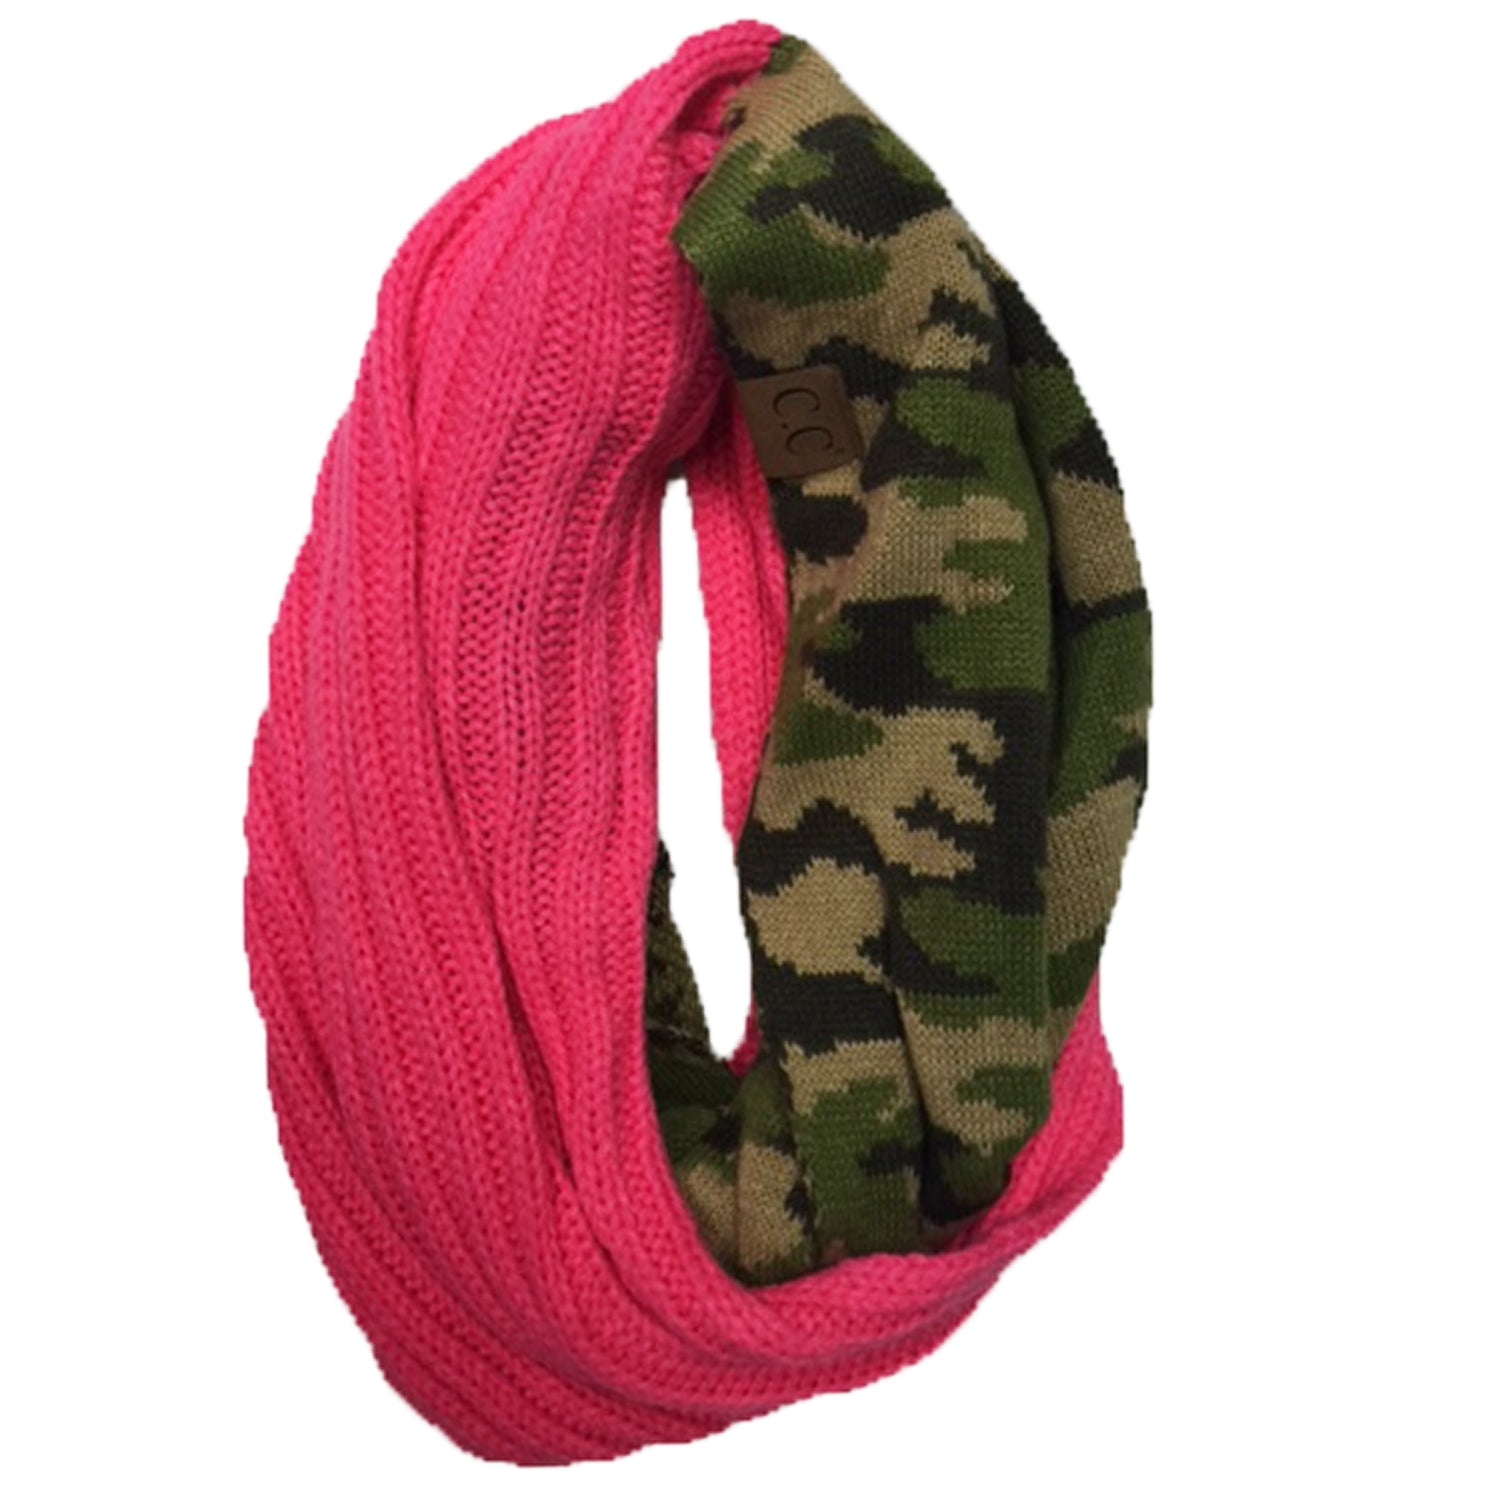 SF-46 CAMO INFINITY SCARF CANDY PINK